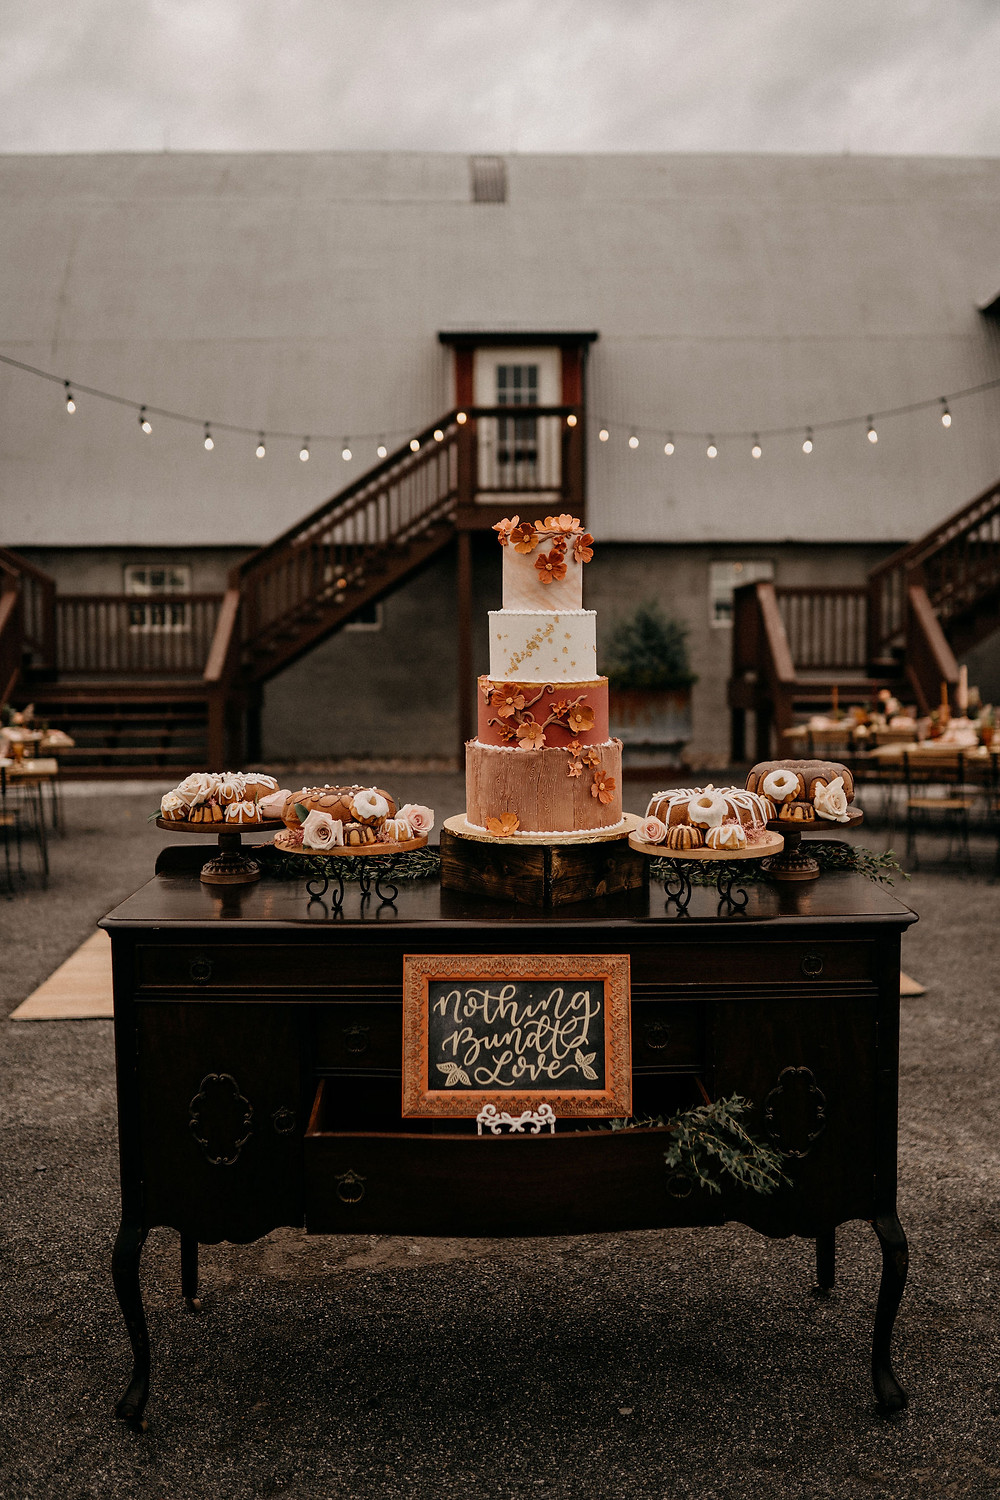 Outdoor Wedding Cake Display: Warm & Rustic Styled Shoot at Hayloft in the Arch captured by Tracy Jade Photography featured on Pretty Little Vintage Co.